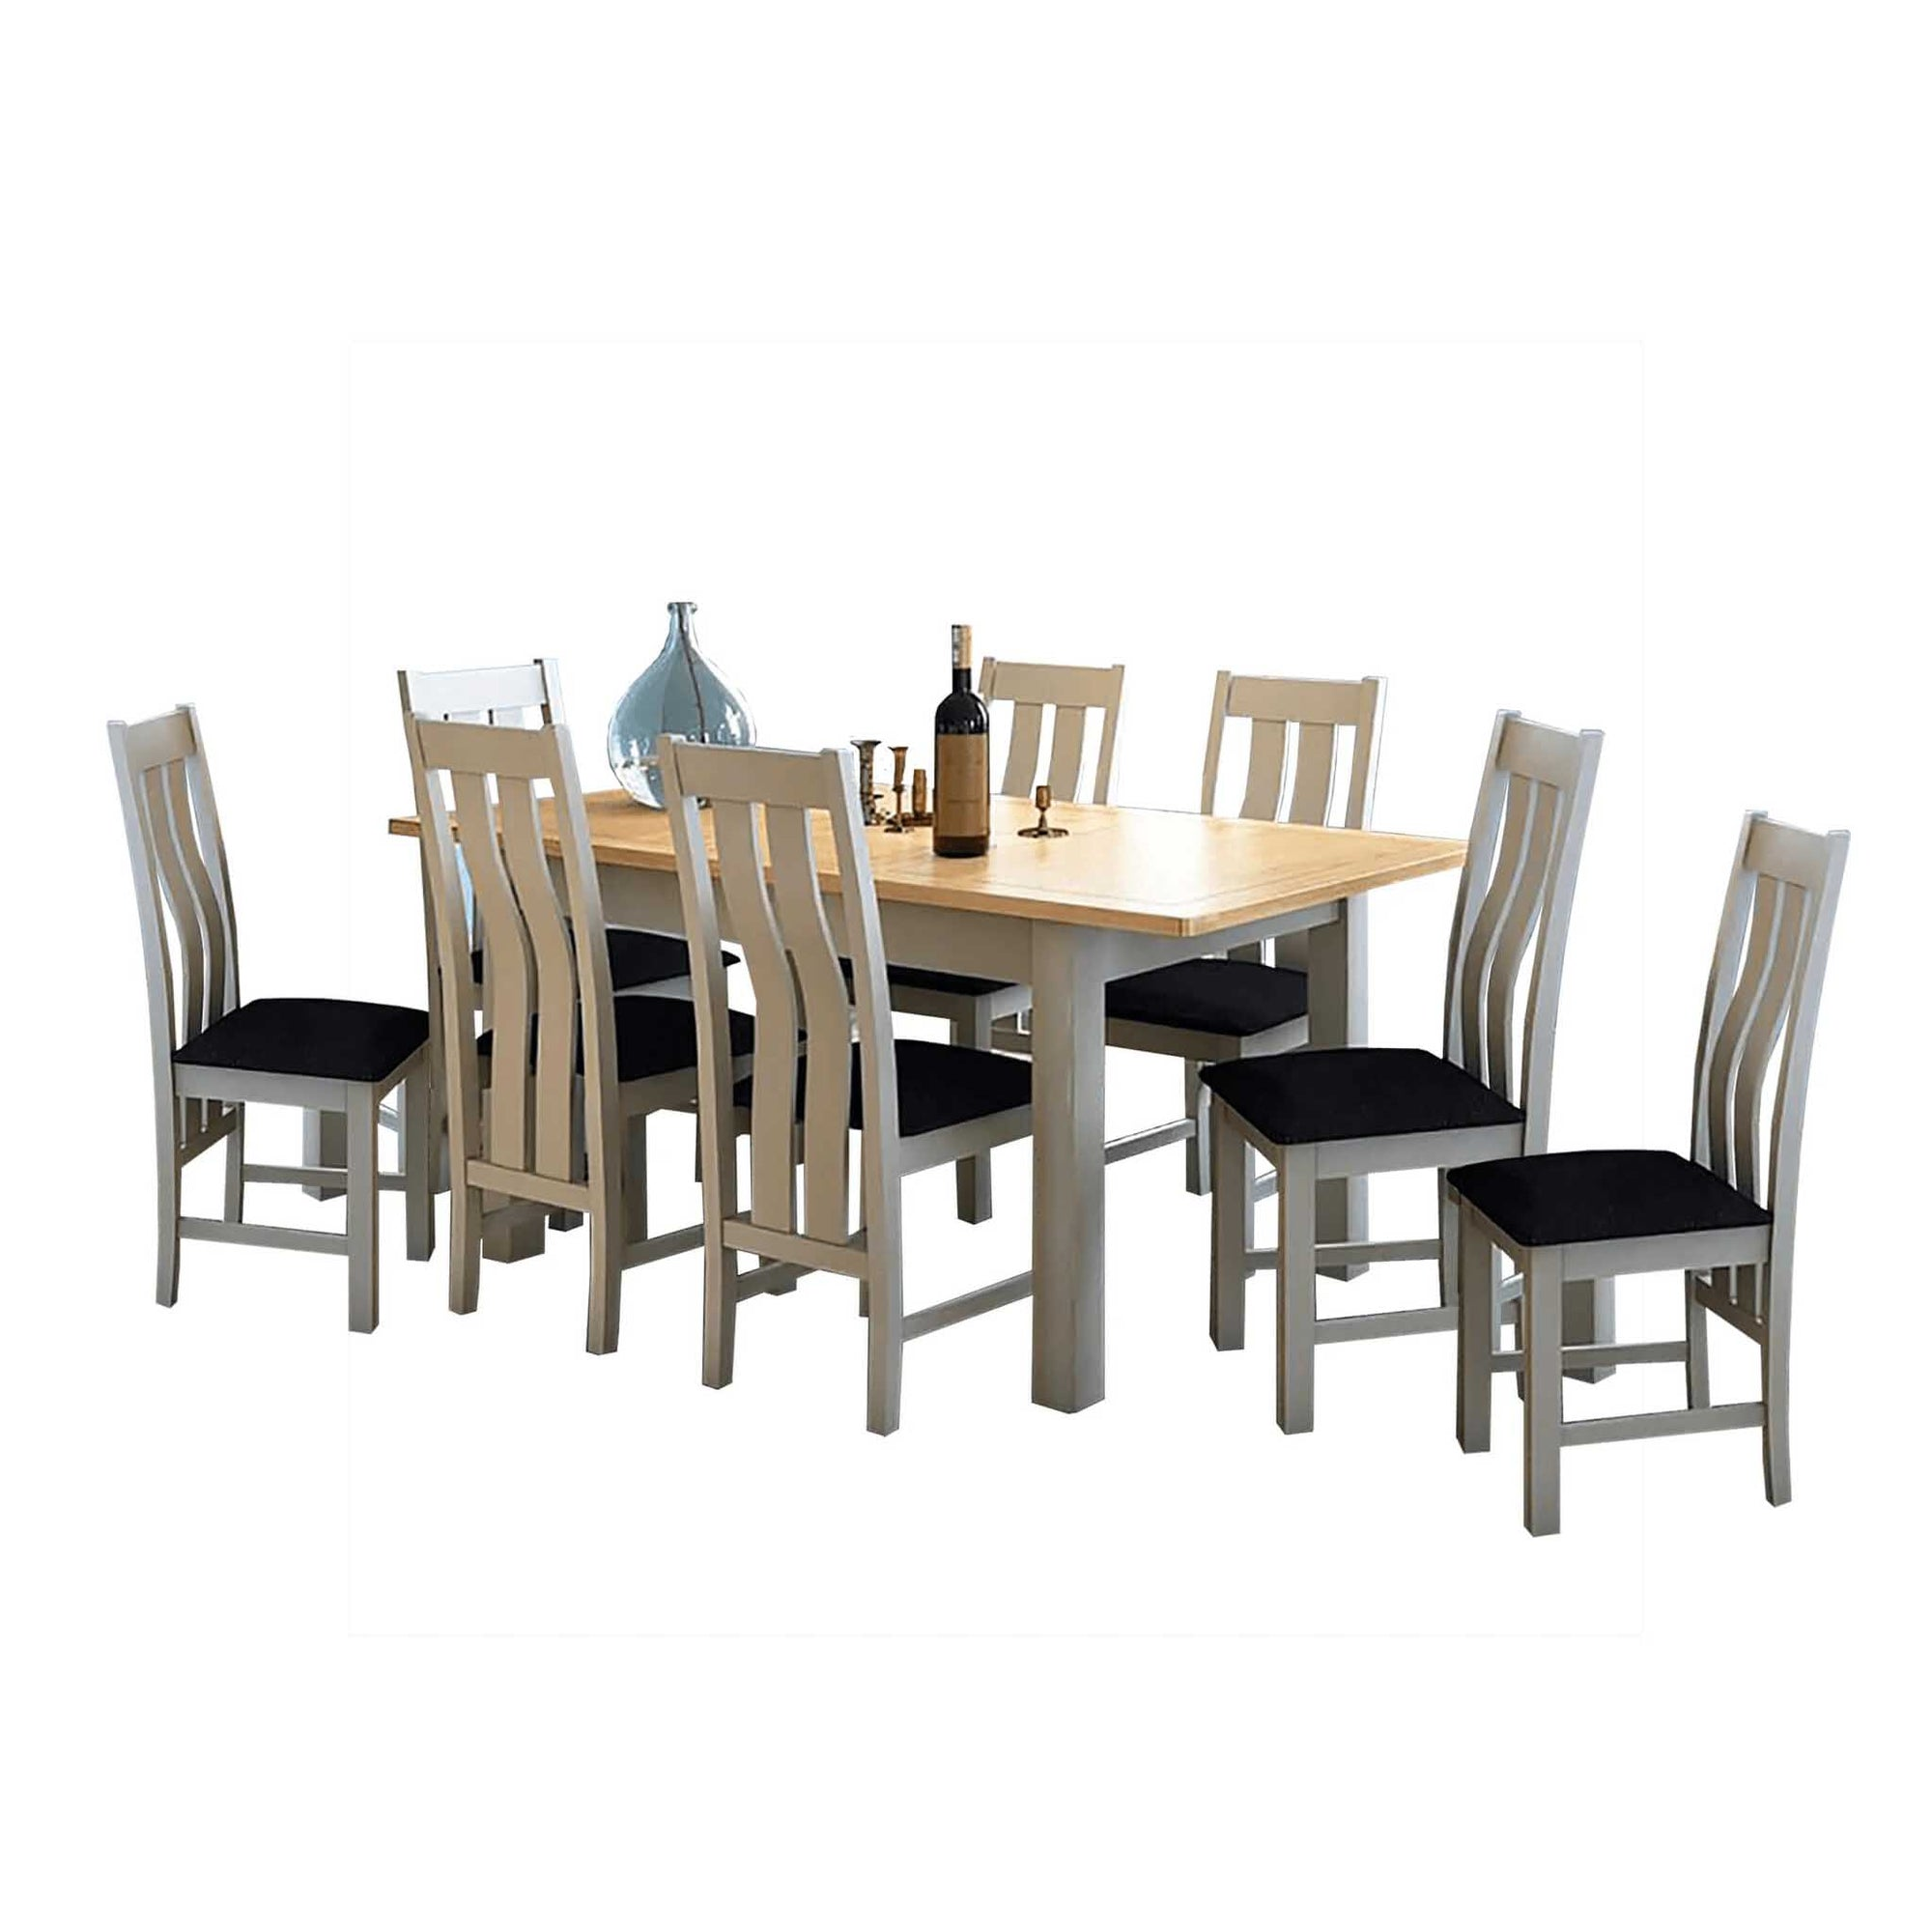 The Padstow Grey Wooden Extending Dining Table Set with 8 Dining Chairs from Roseland Furniture